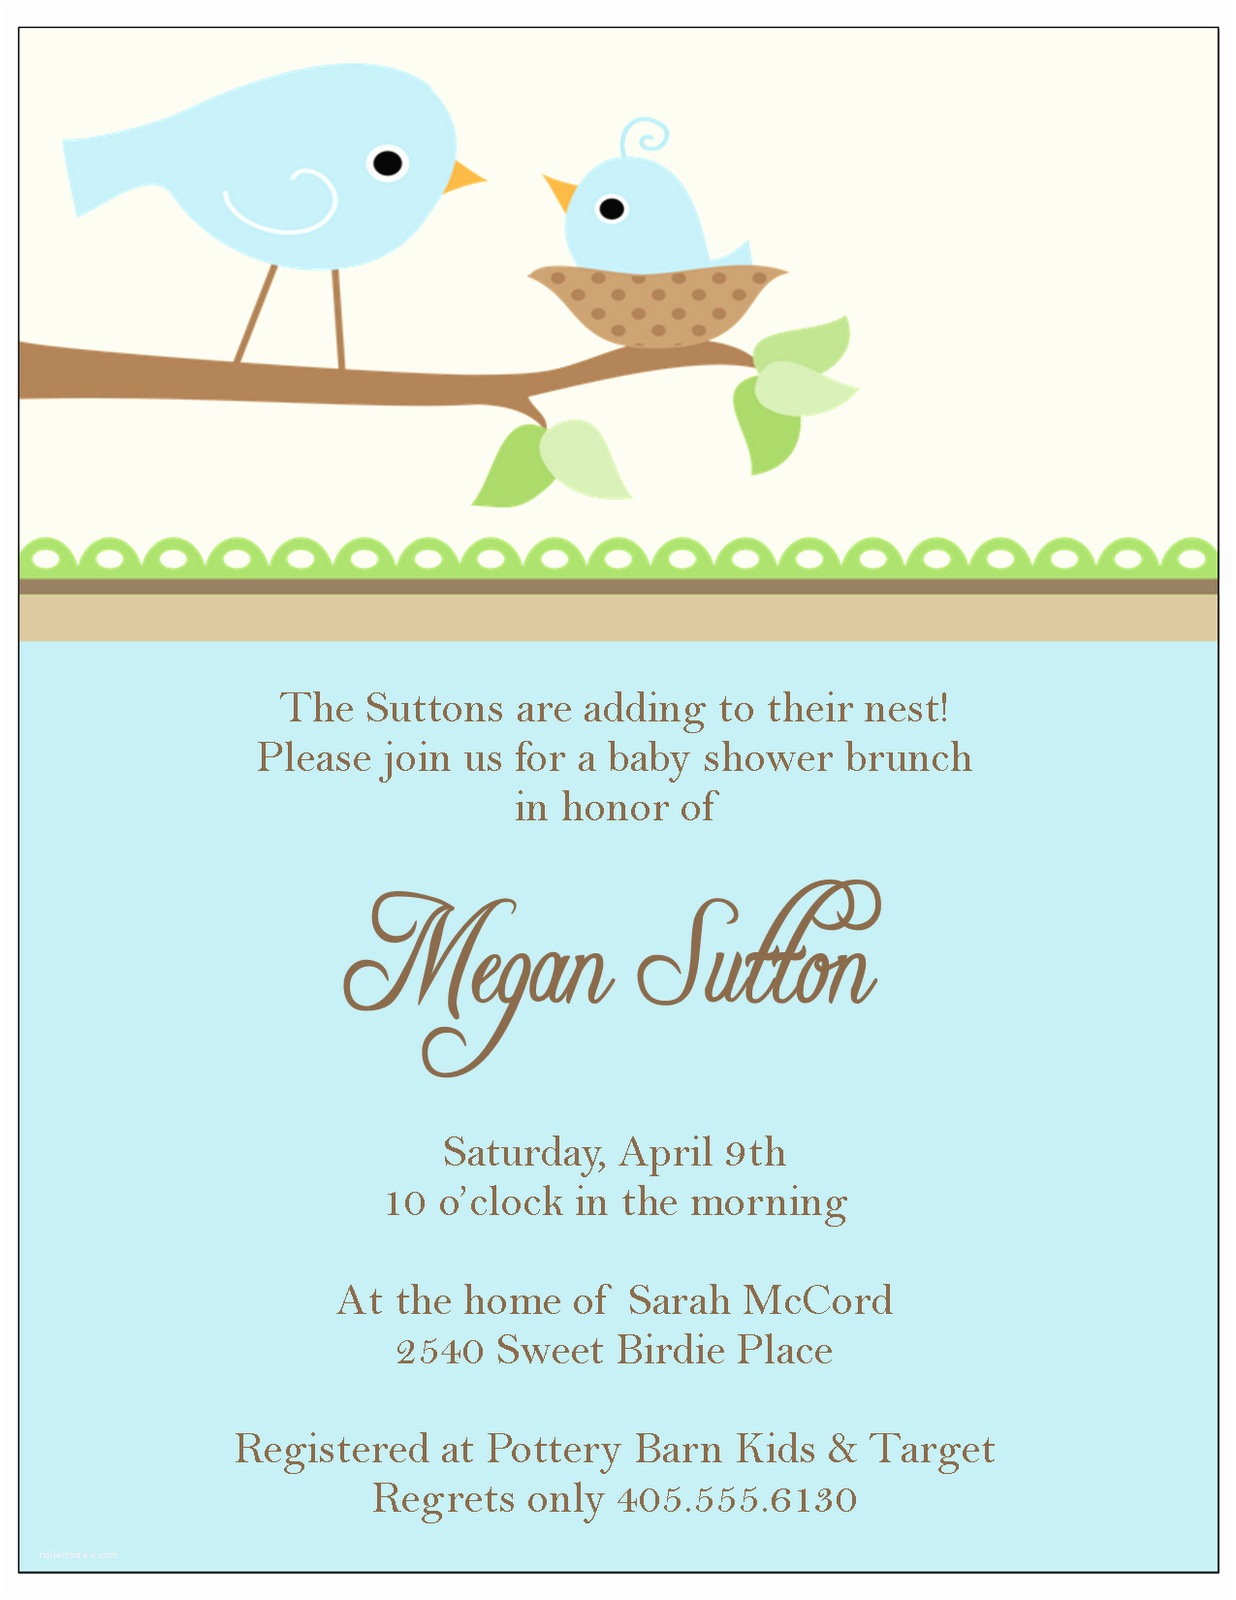 Free Baby Shower Invitations Templates Template Baby Shower Invitation